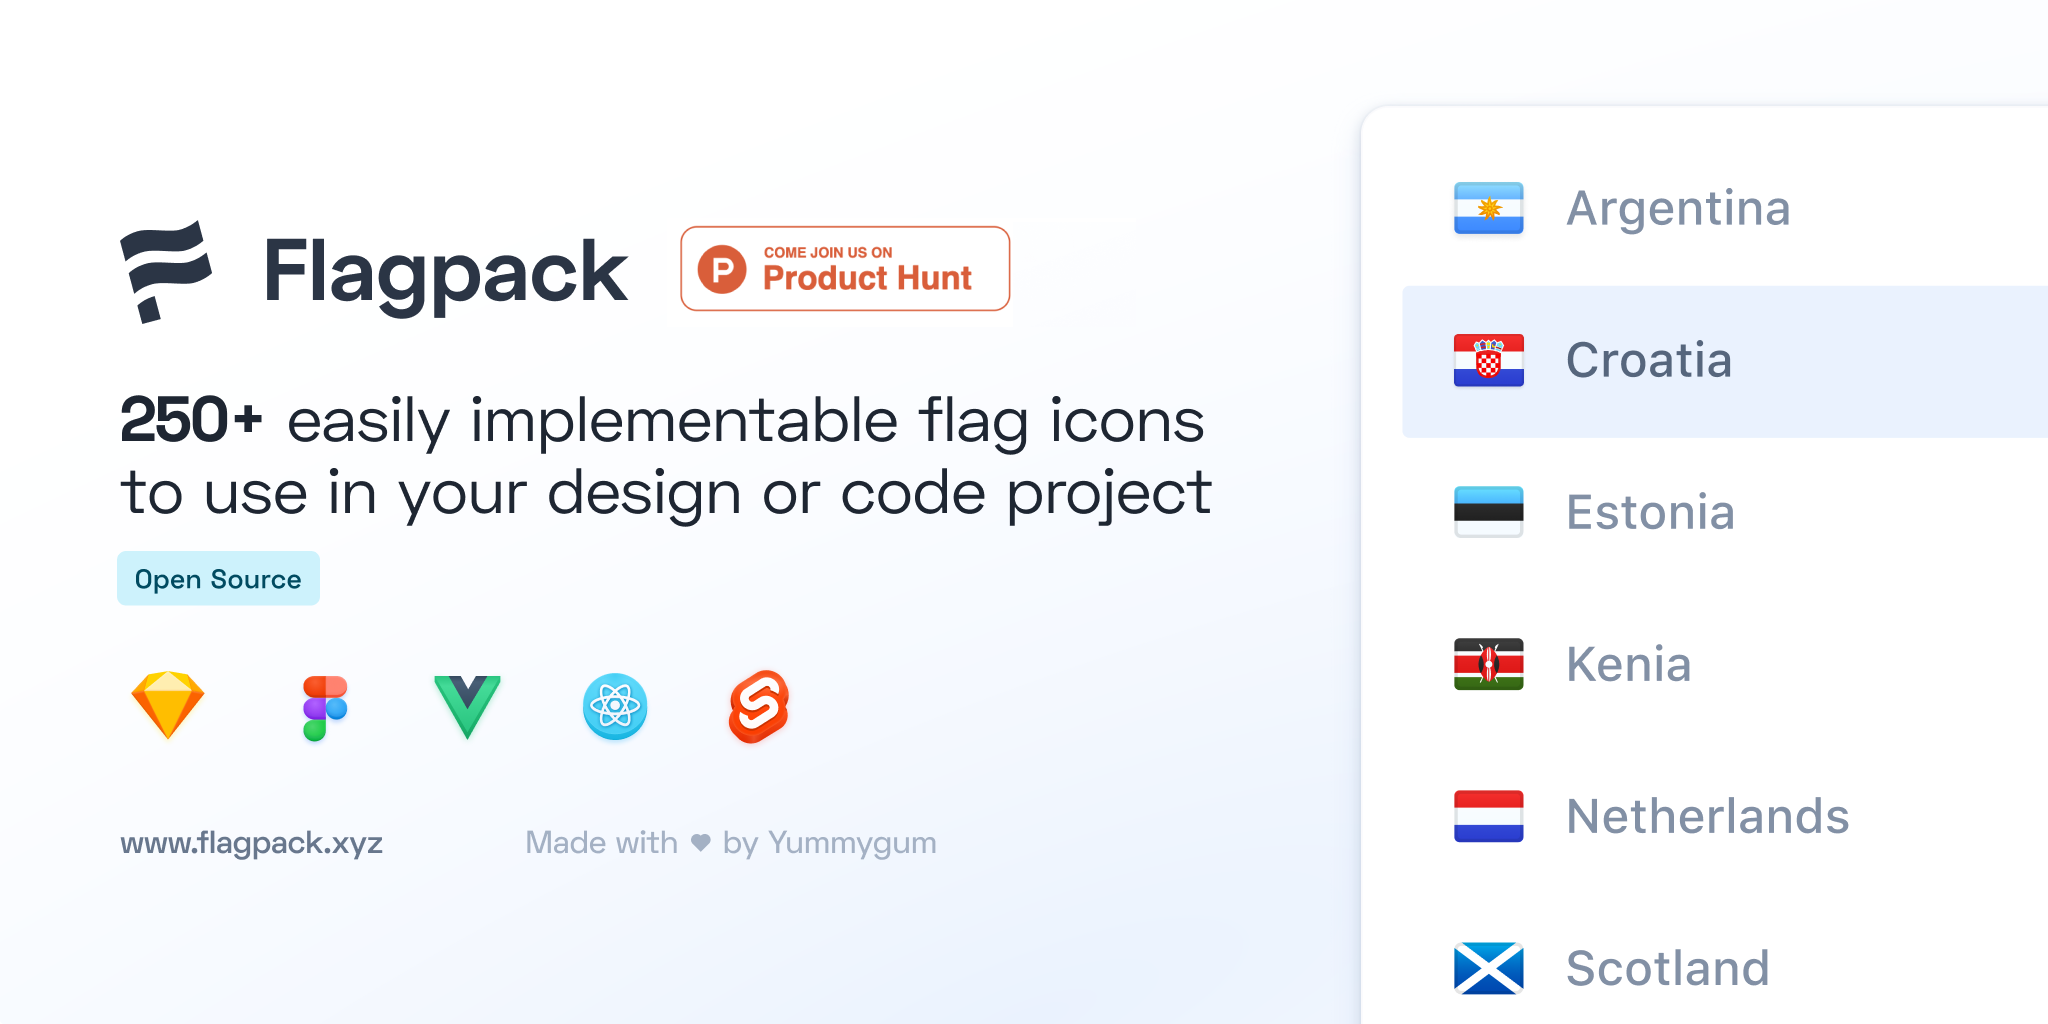 Flagpack. 260+ easily implementable flag icons to use in your design or code project. Open Source. Available for Sketch, Figma, Angular, Vue, and React. www.flagpack.xyz. Made with love by Yummygum. Graphic showing a list with the flags of Argentina, Croatia, Estonia, Kenia, Netherlands, and Scotland.